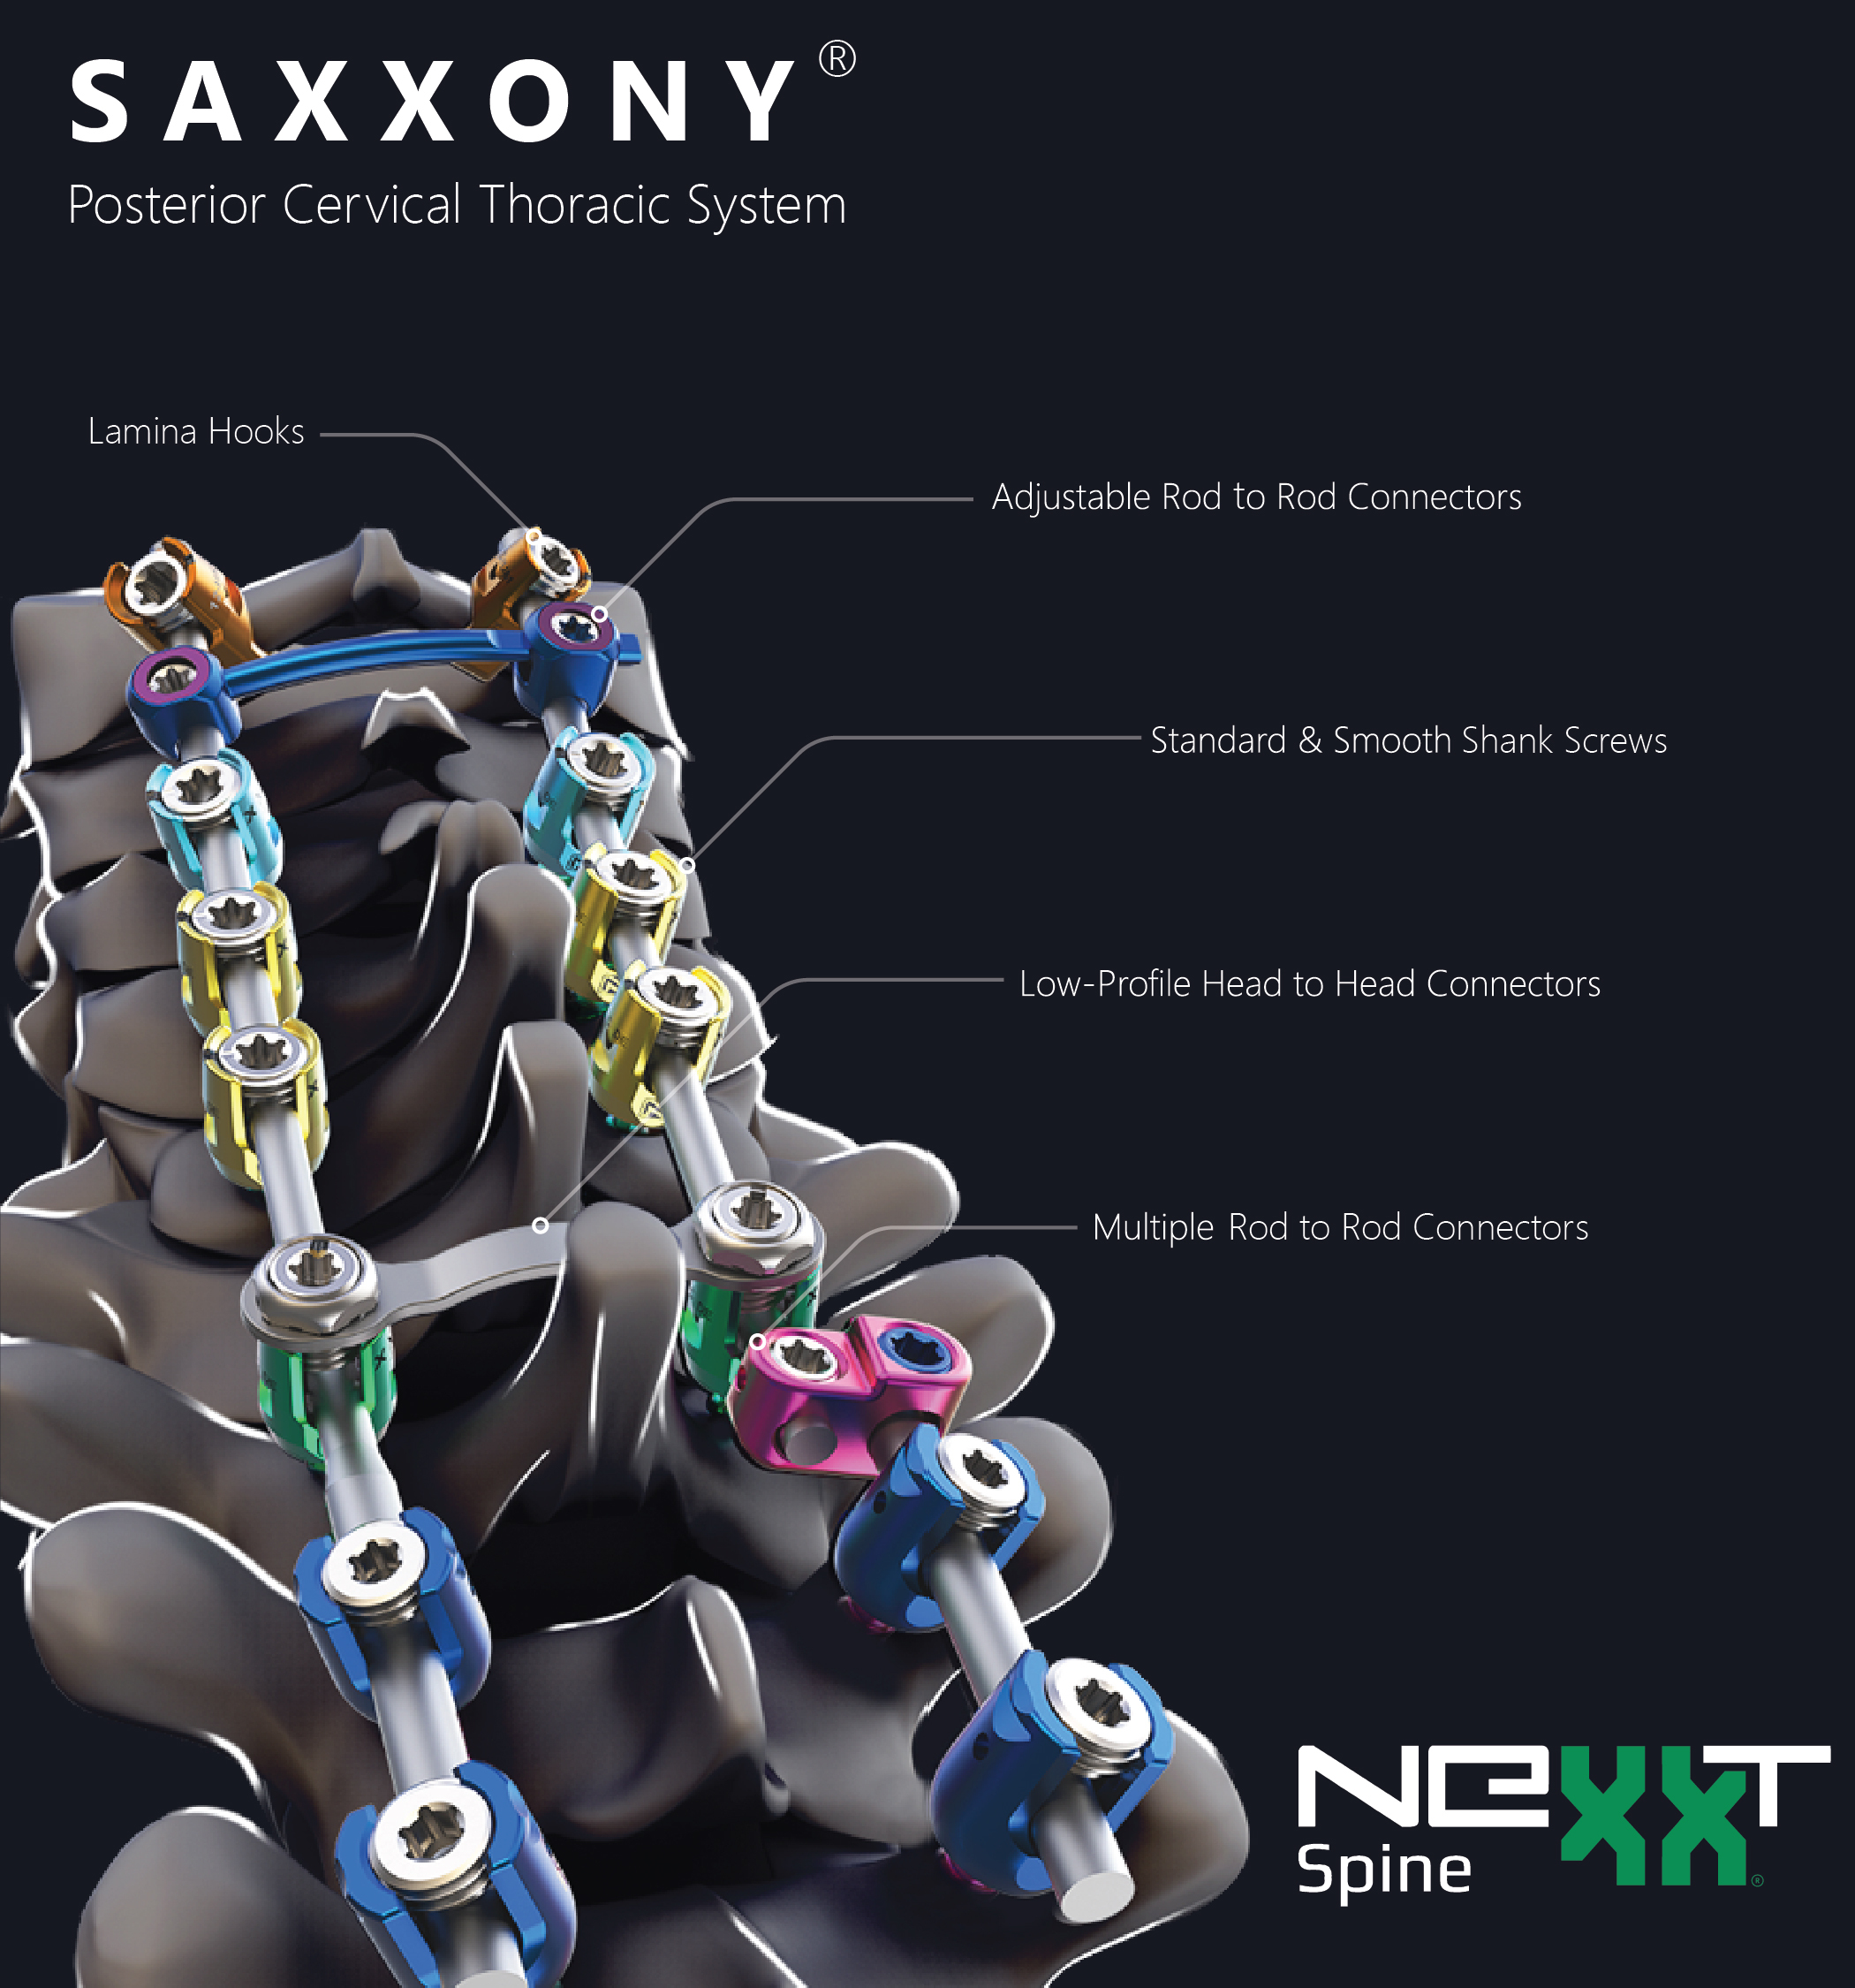 Nexxt Spine Launches Saxxony Posterior Cervical Thoracic Spine